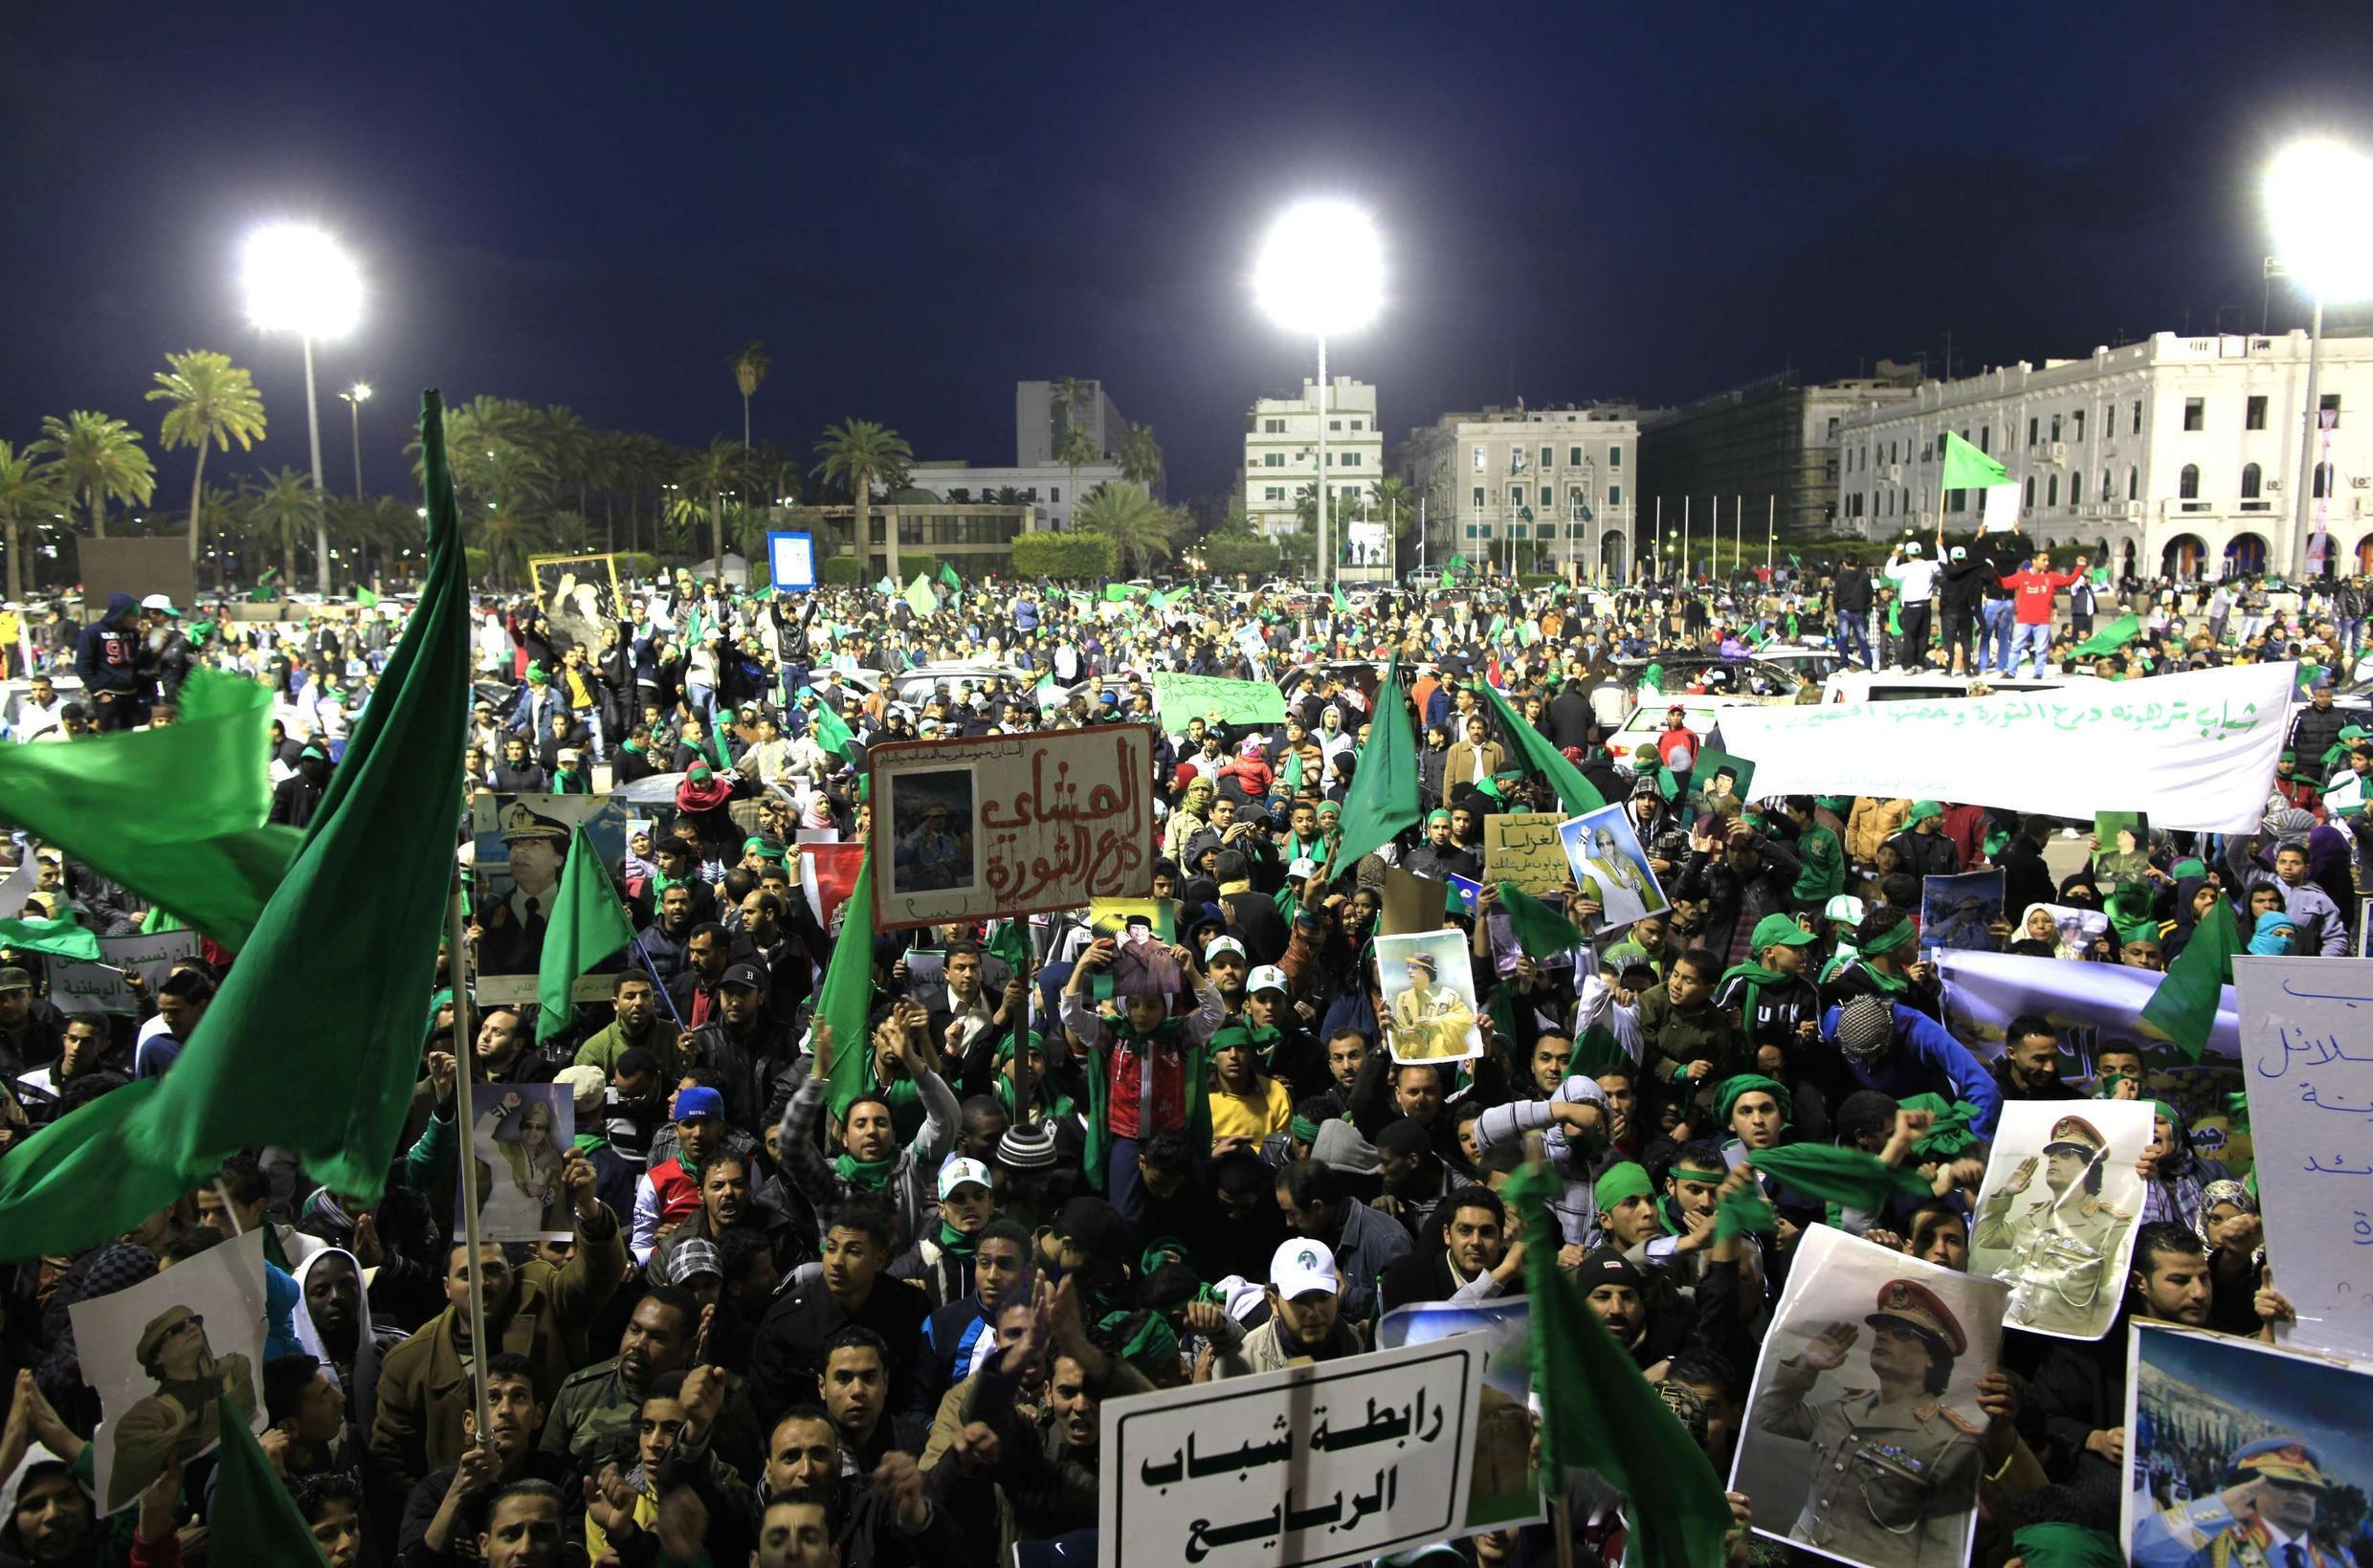 Supporters of Libyan leader Moamer Kadhafi chant slogans at the Green Square 25 February 2011.